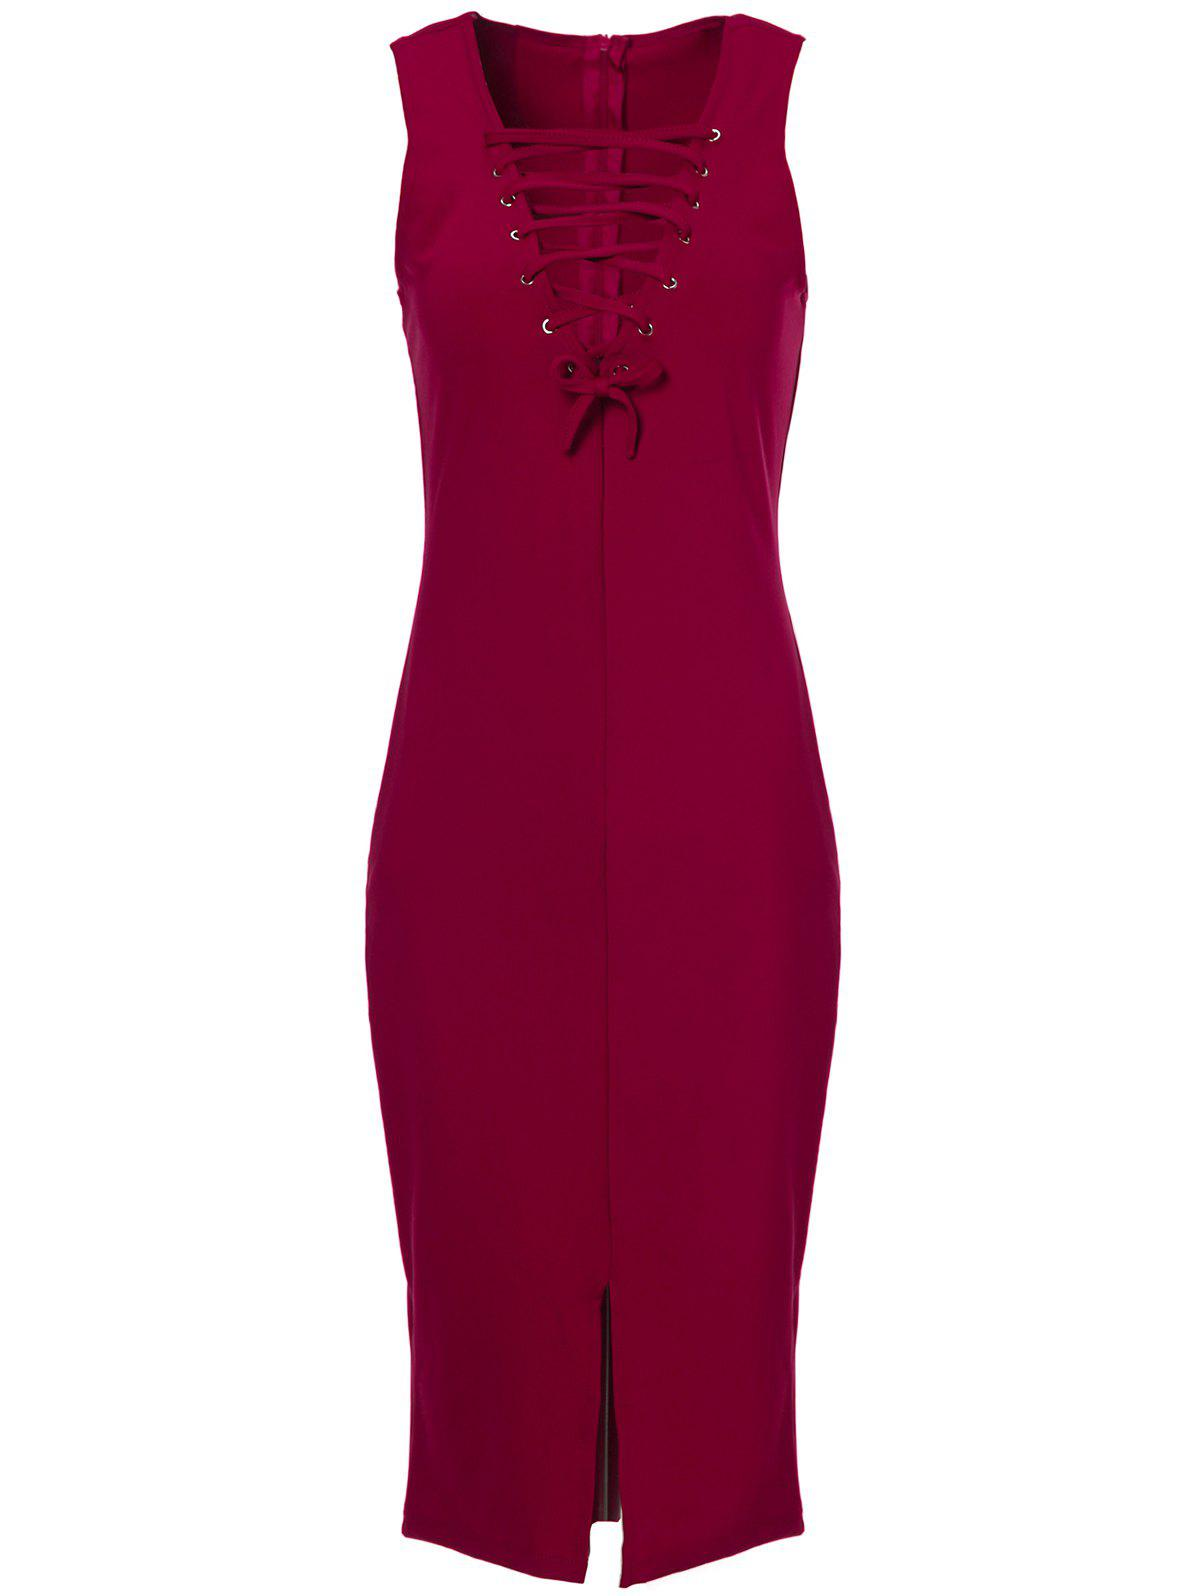 Sexy Women's V-Neck Sleeveless Lace Front Slit Dress - WINE RED ONE SIZE(FIT SIZE XS TO M)